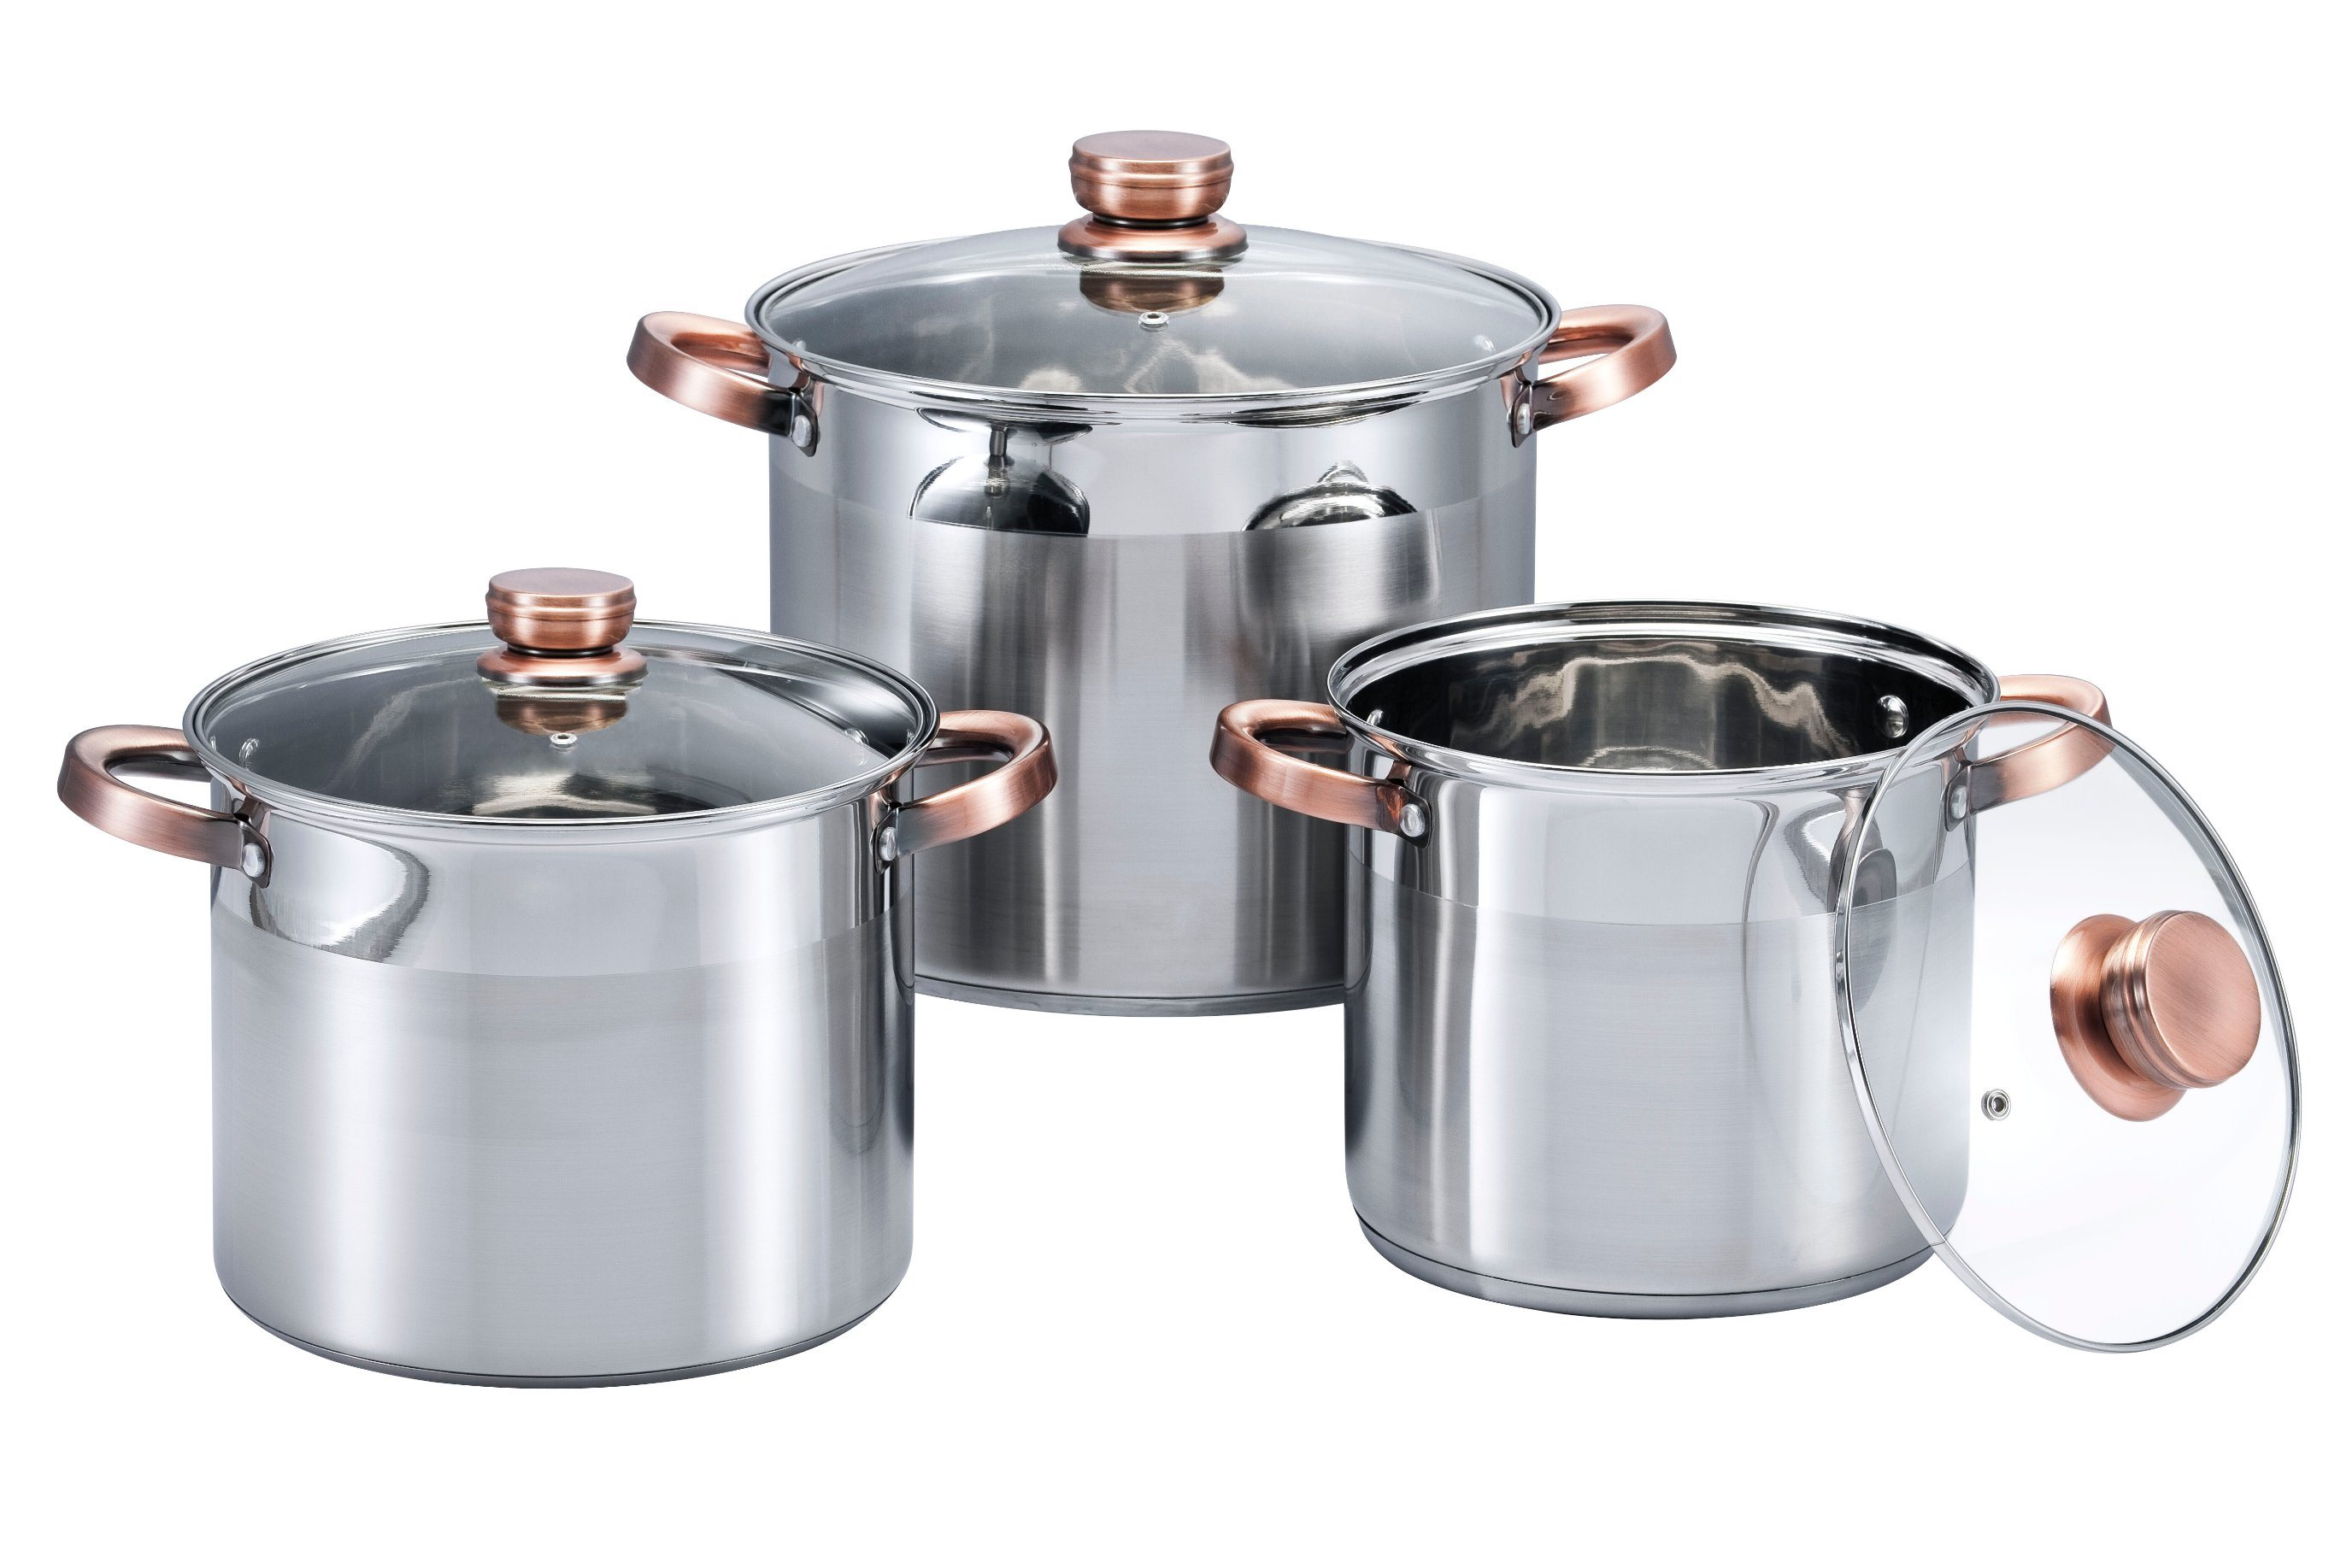 6 PCS High Pot Cookware Set